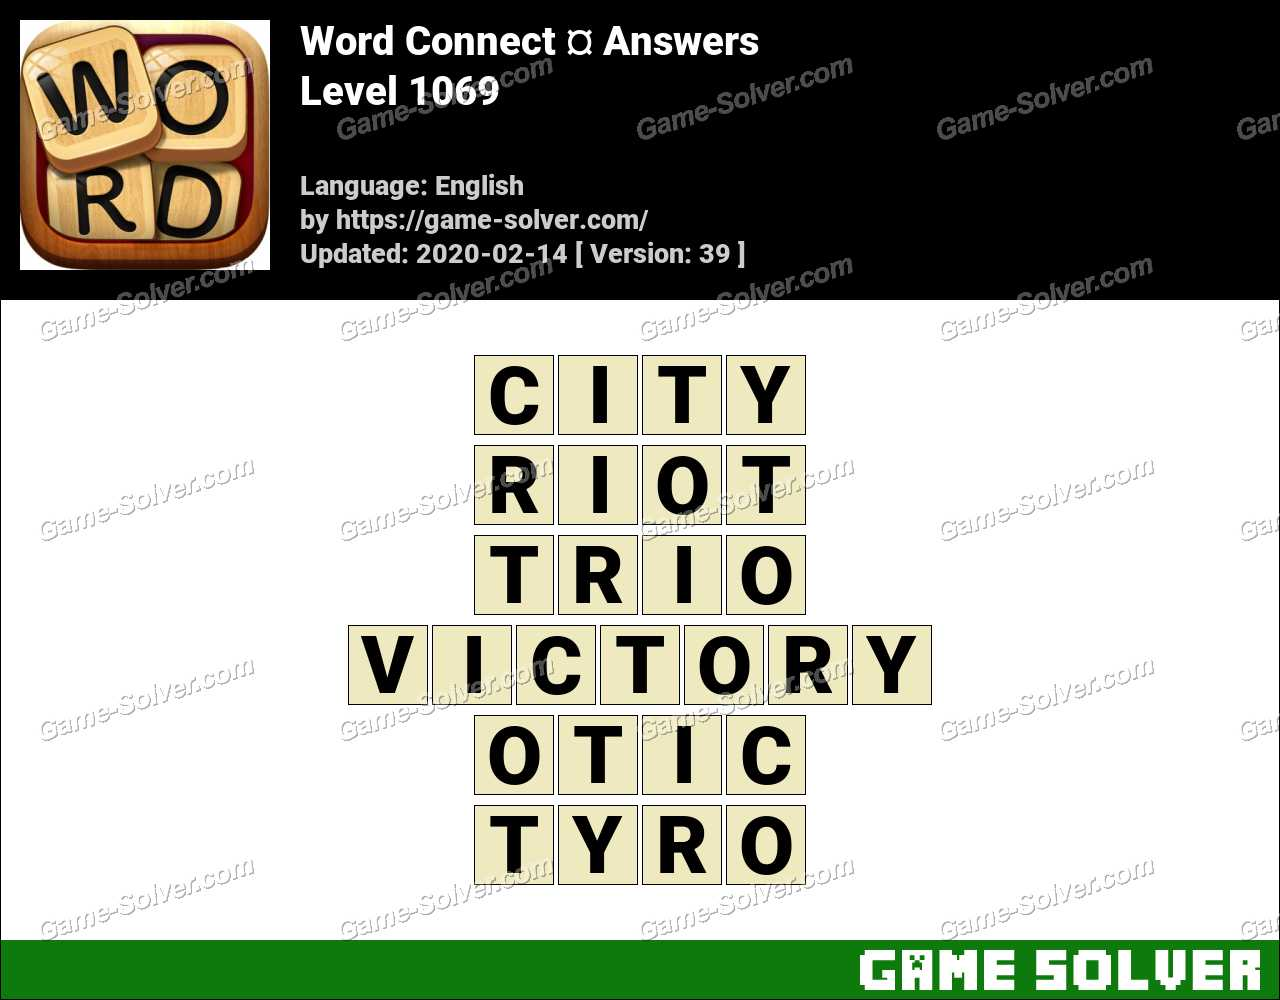 Word Connect Level 1069 Answers